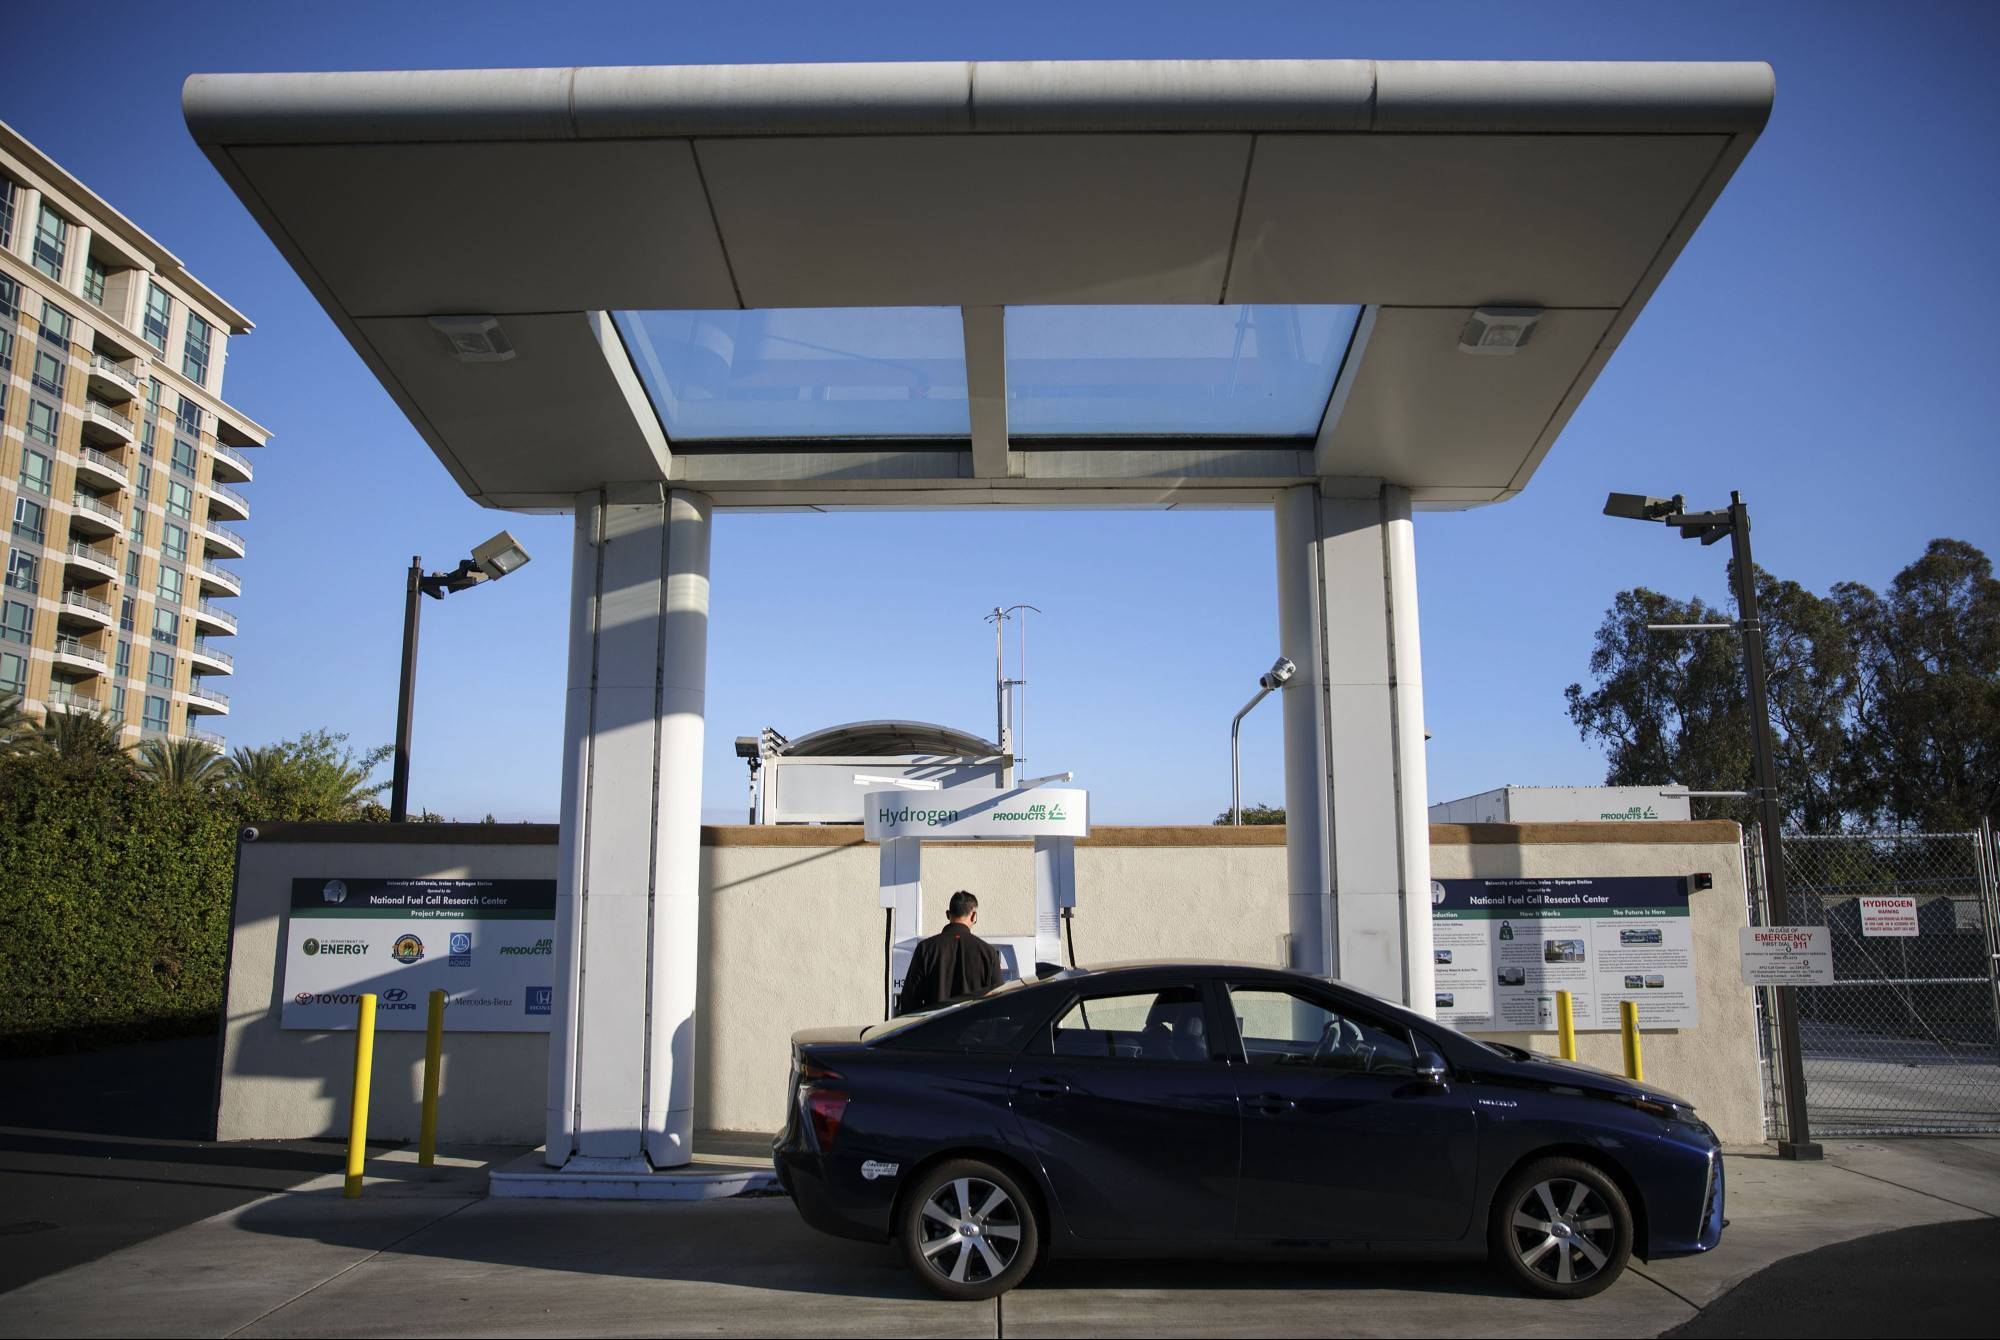 A customer refuels a Toyota Mirai hydrogen fuel cell vehicle at the UC Irvine Hydrogen Fueling Station, operated by the National Fuel Cell Research Center, in Irvine, California, on  Feb. 4. | BLOOMBERG